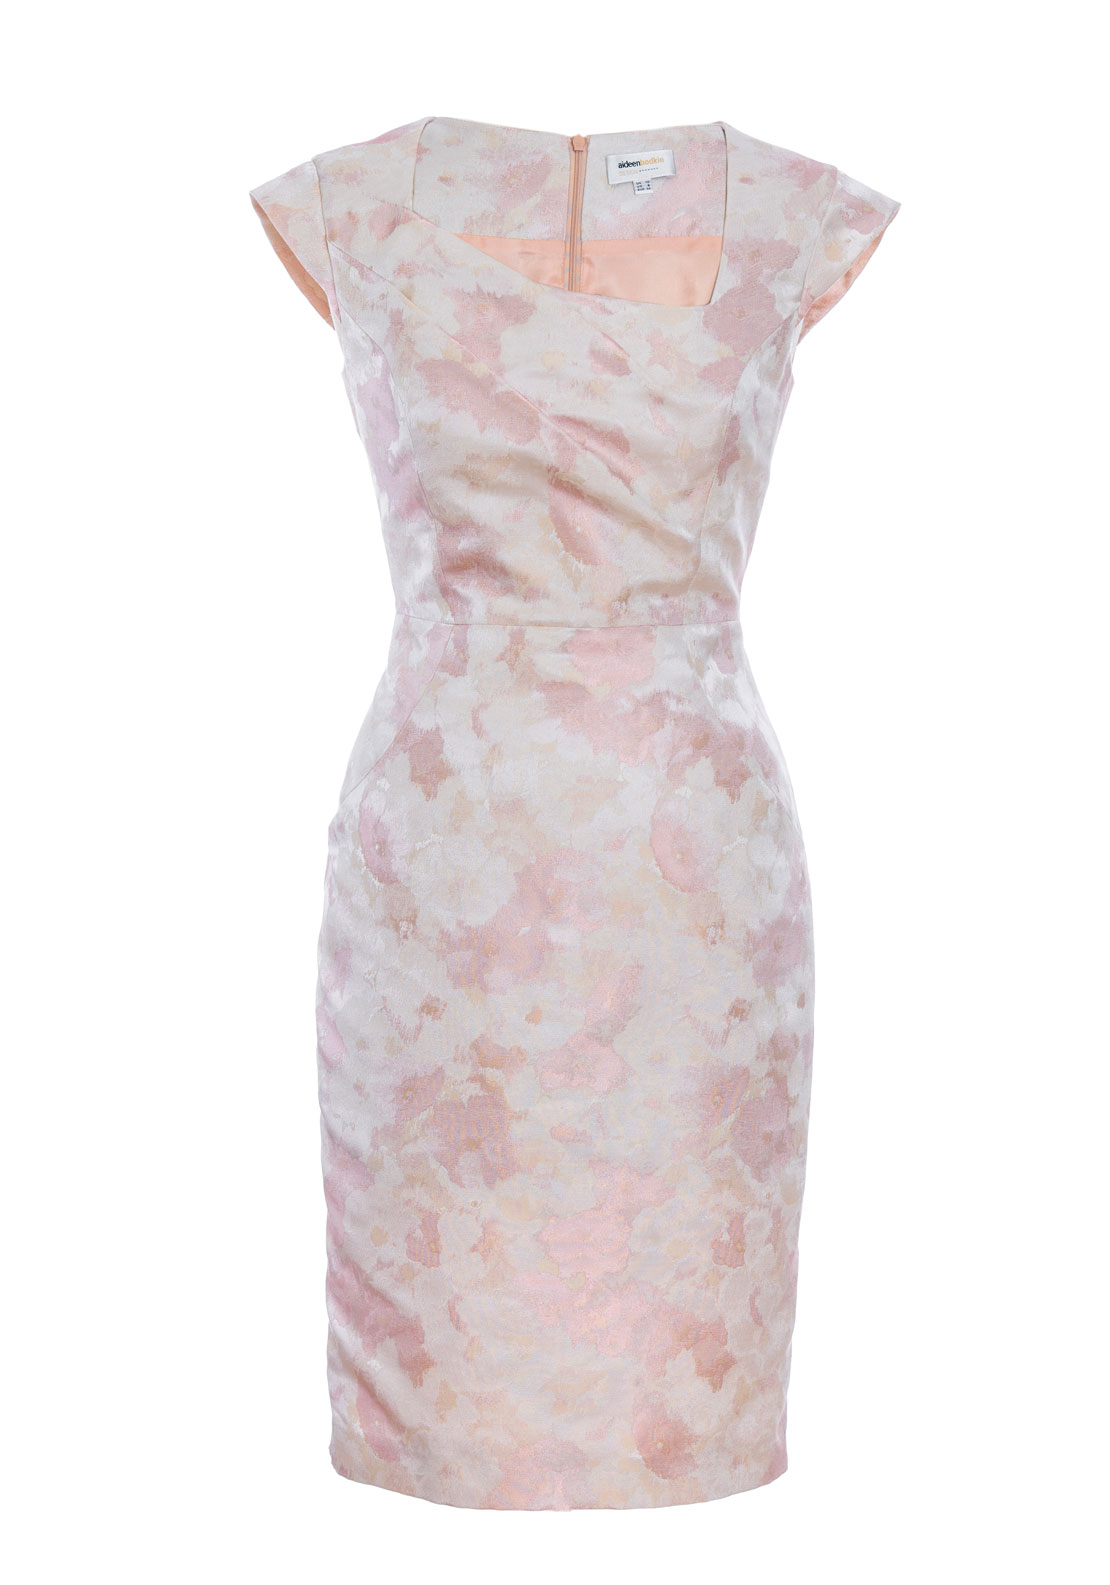 Aideen Bodkin Azalea Floral Dress, Jacquard